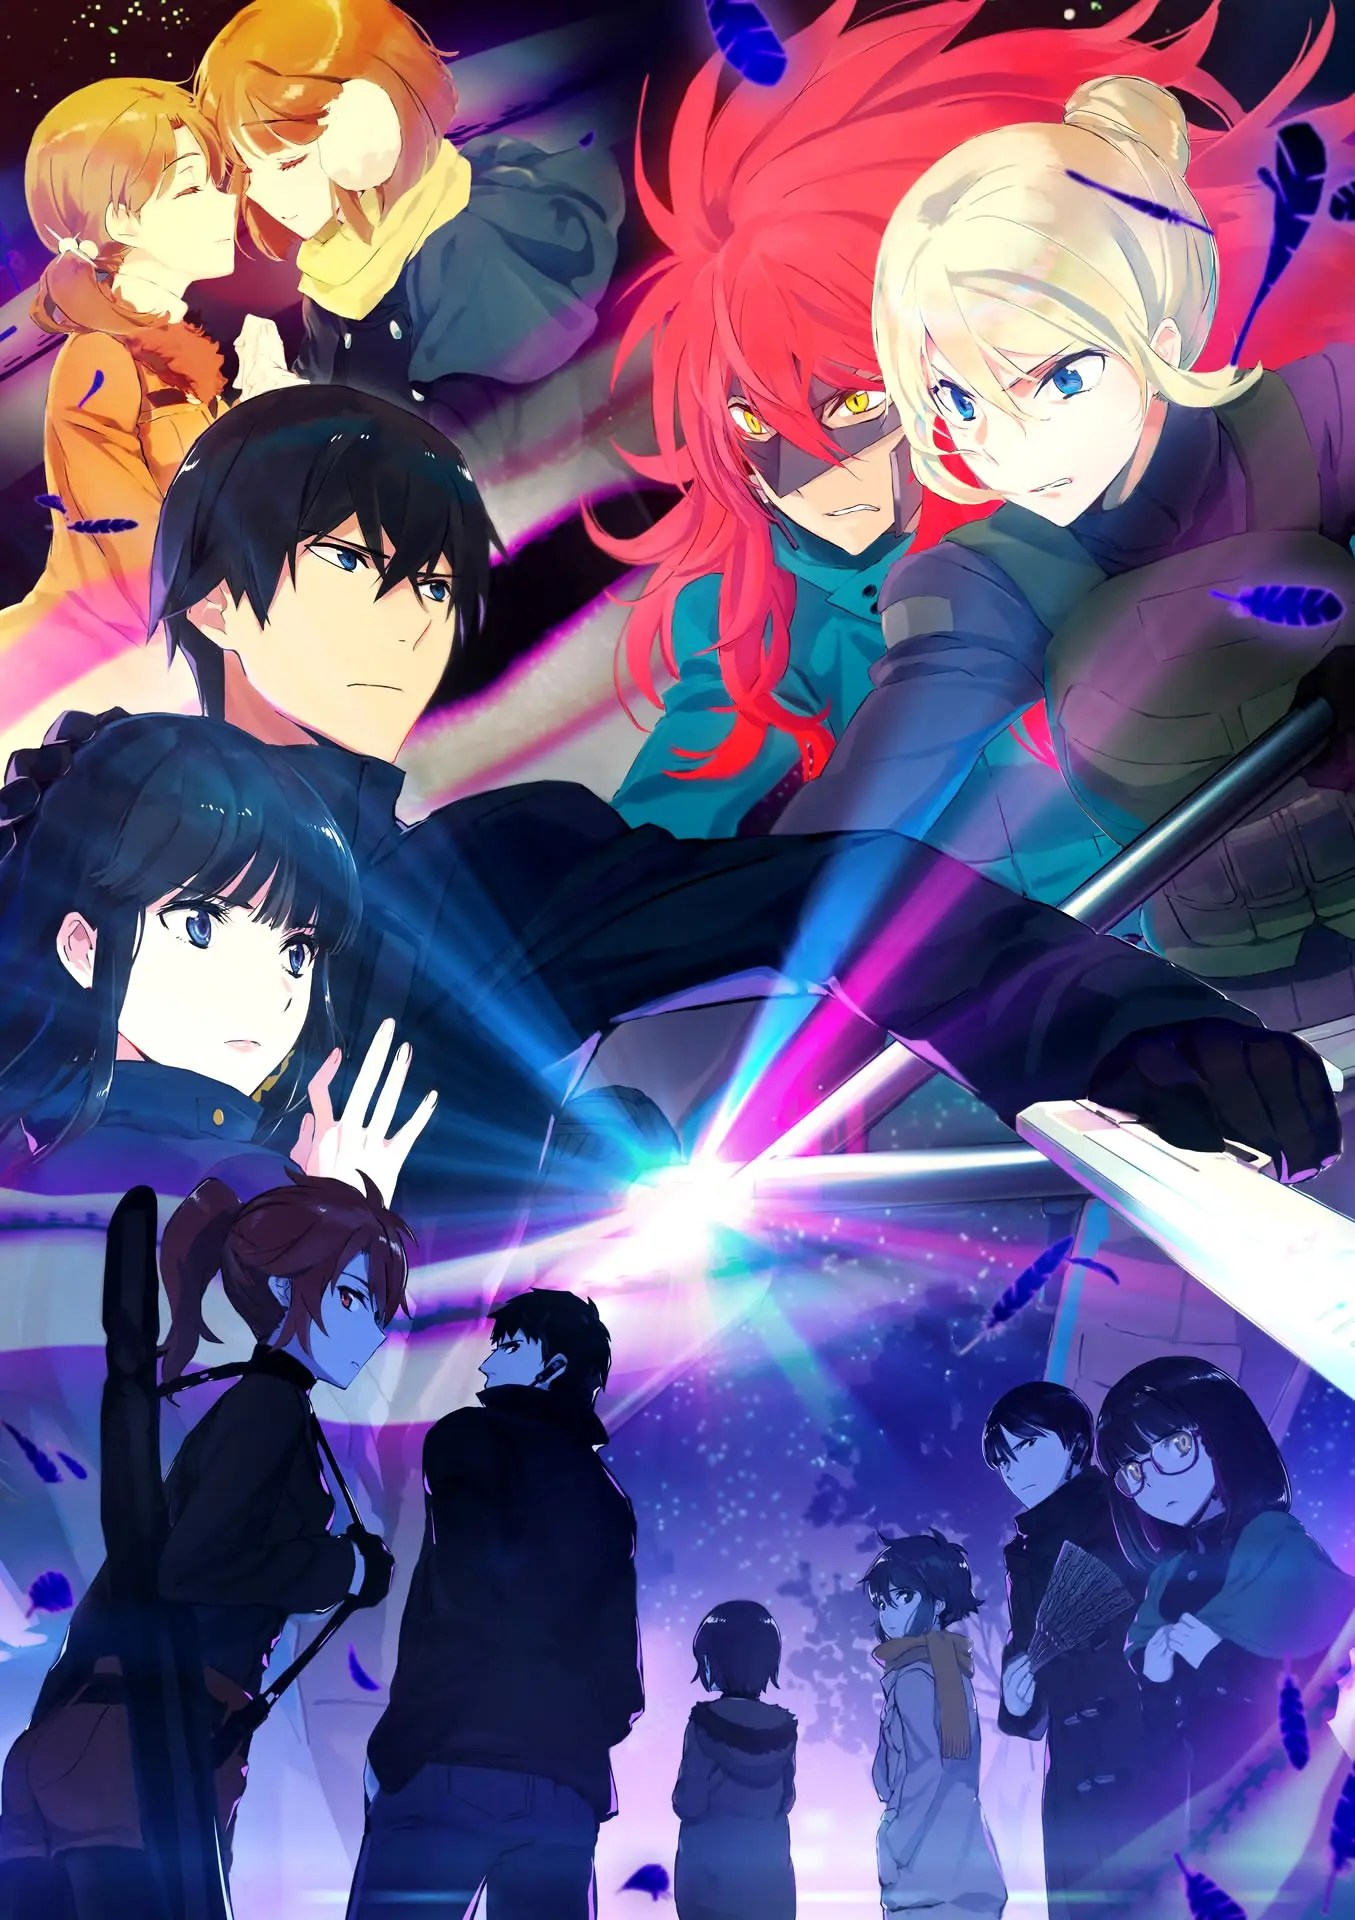 Visuel clé pour la saison 2 de l'anime The Irregular at Magic High School